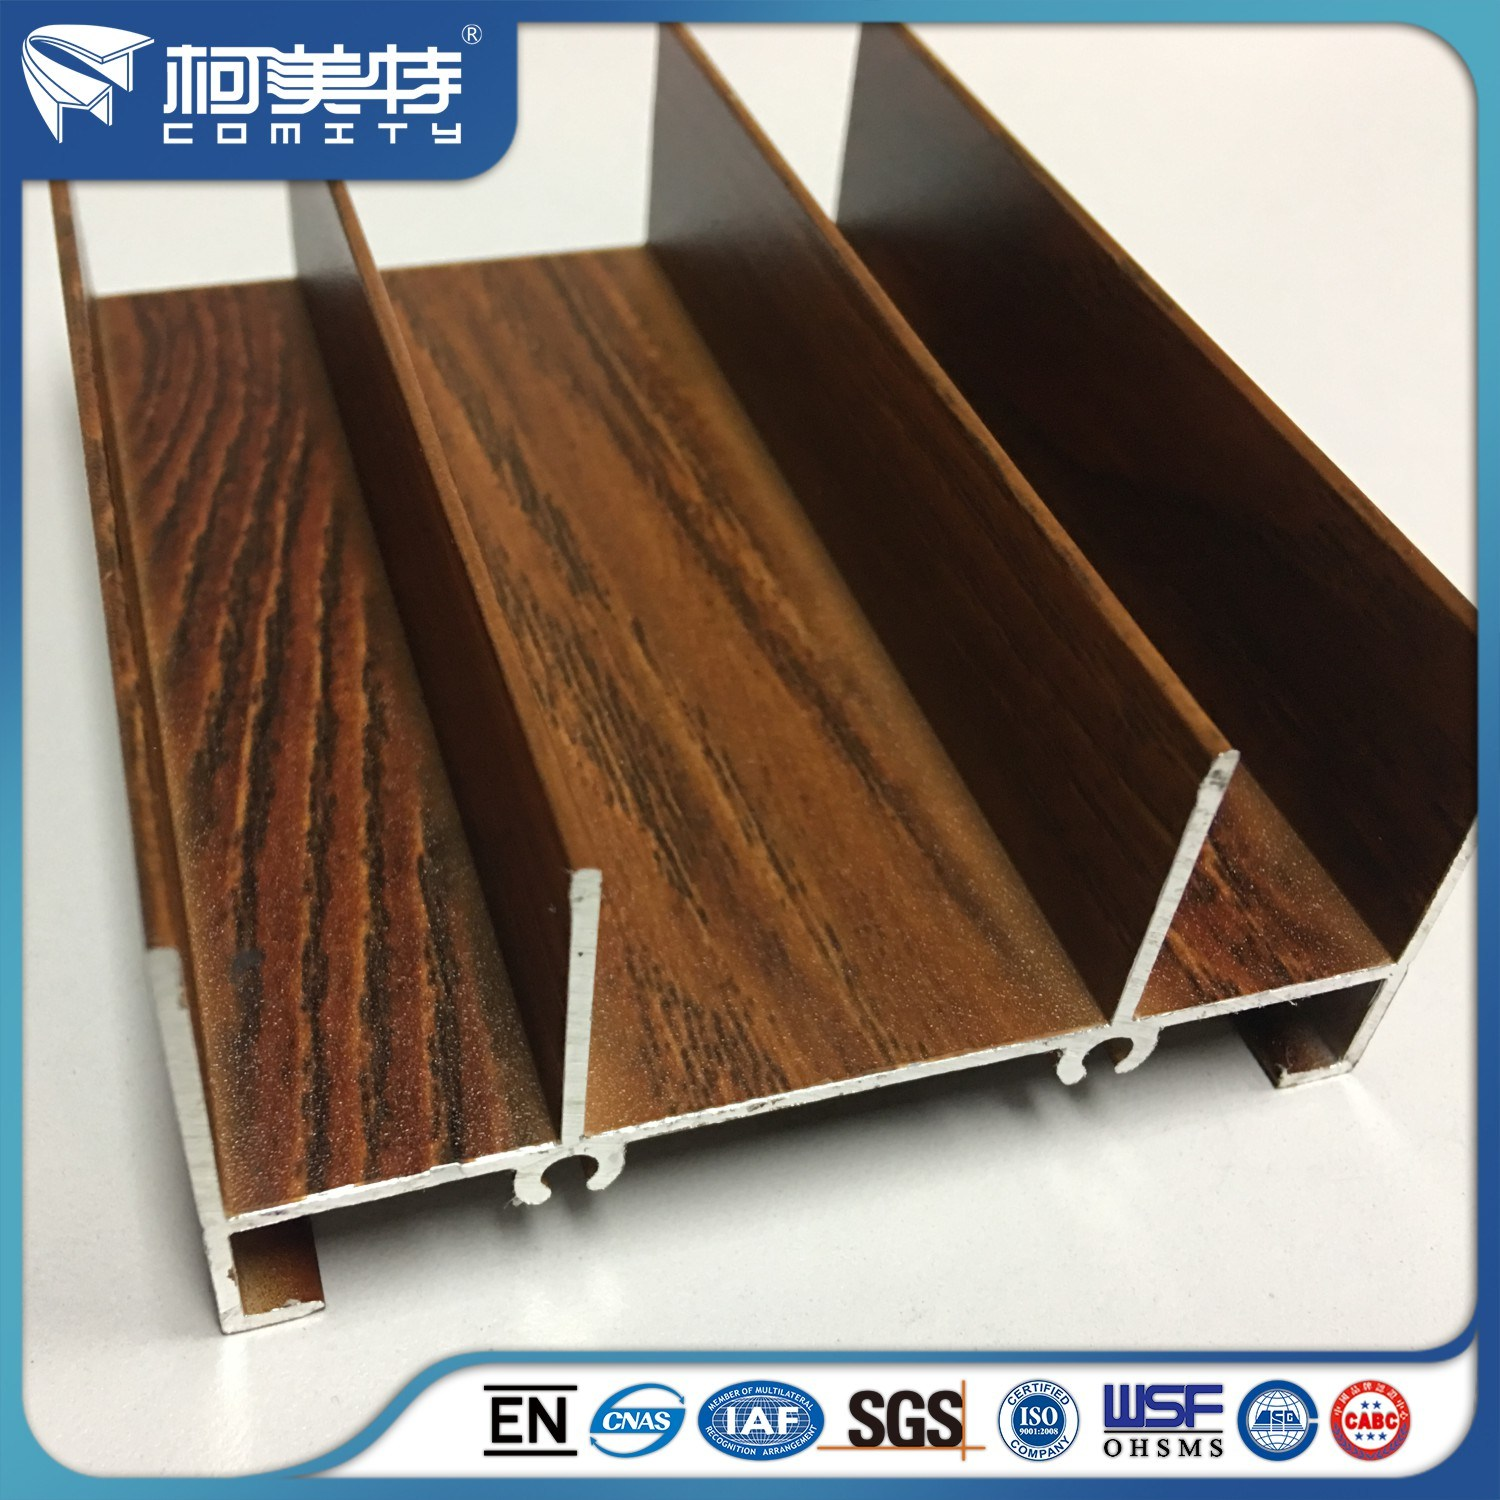 China Thermal Insulation 6063 T5, T6 Aluminum Window Frame Profile ...